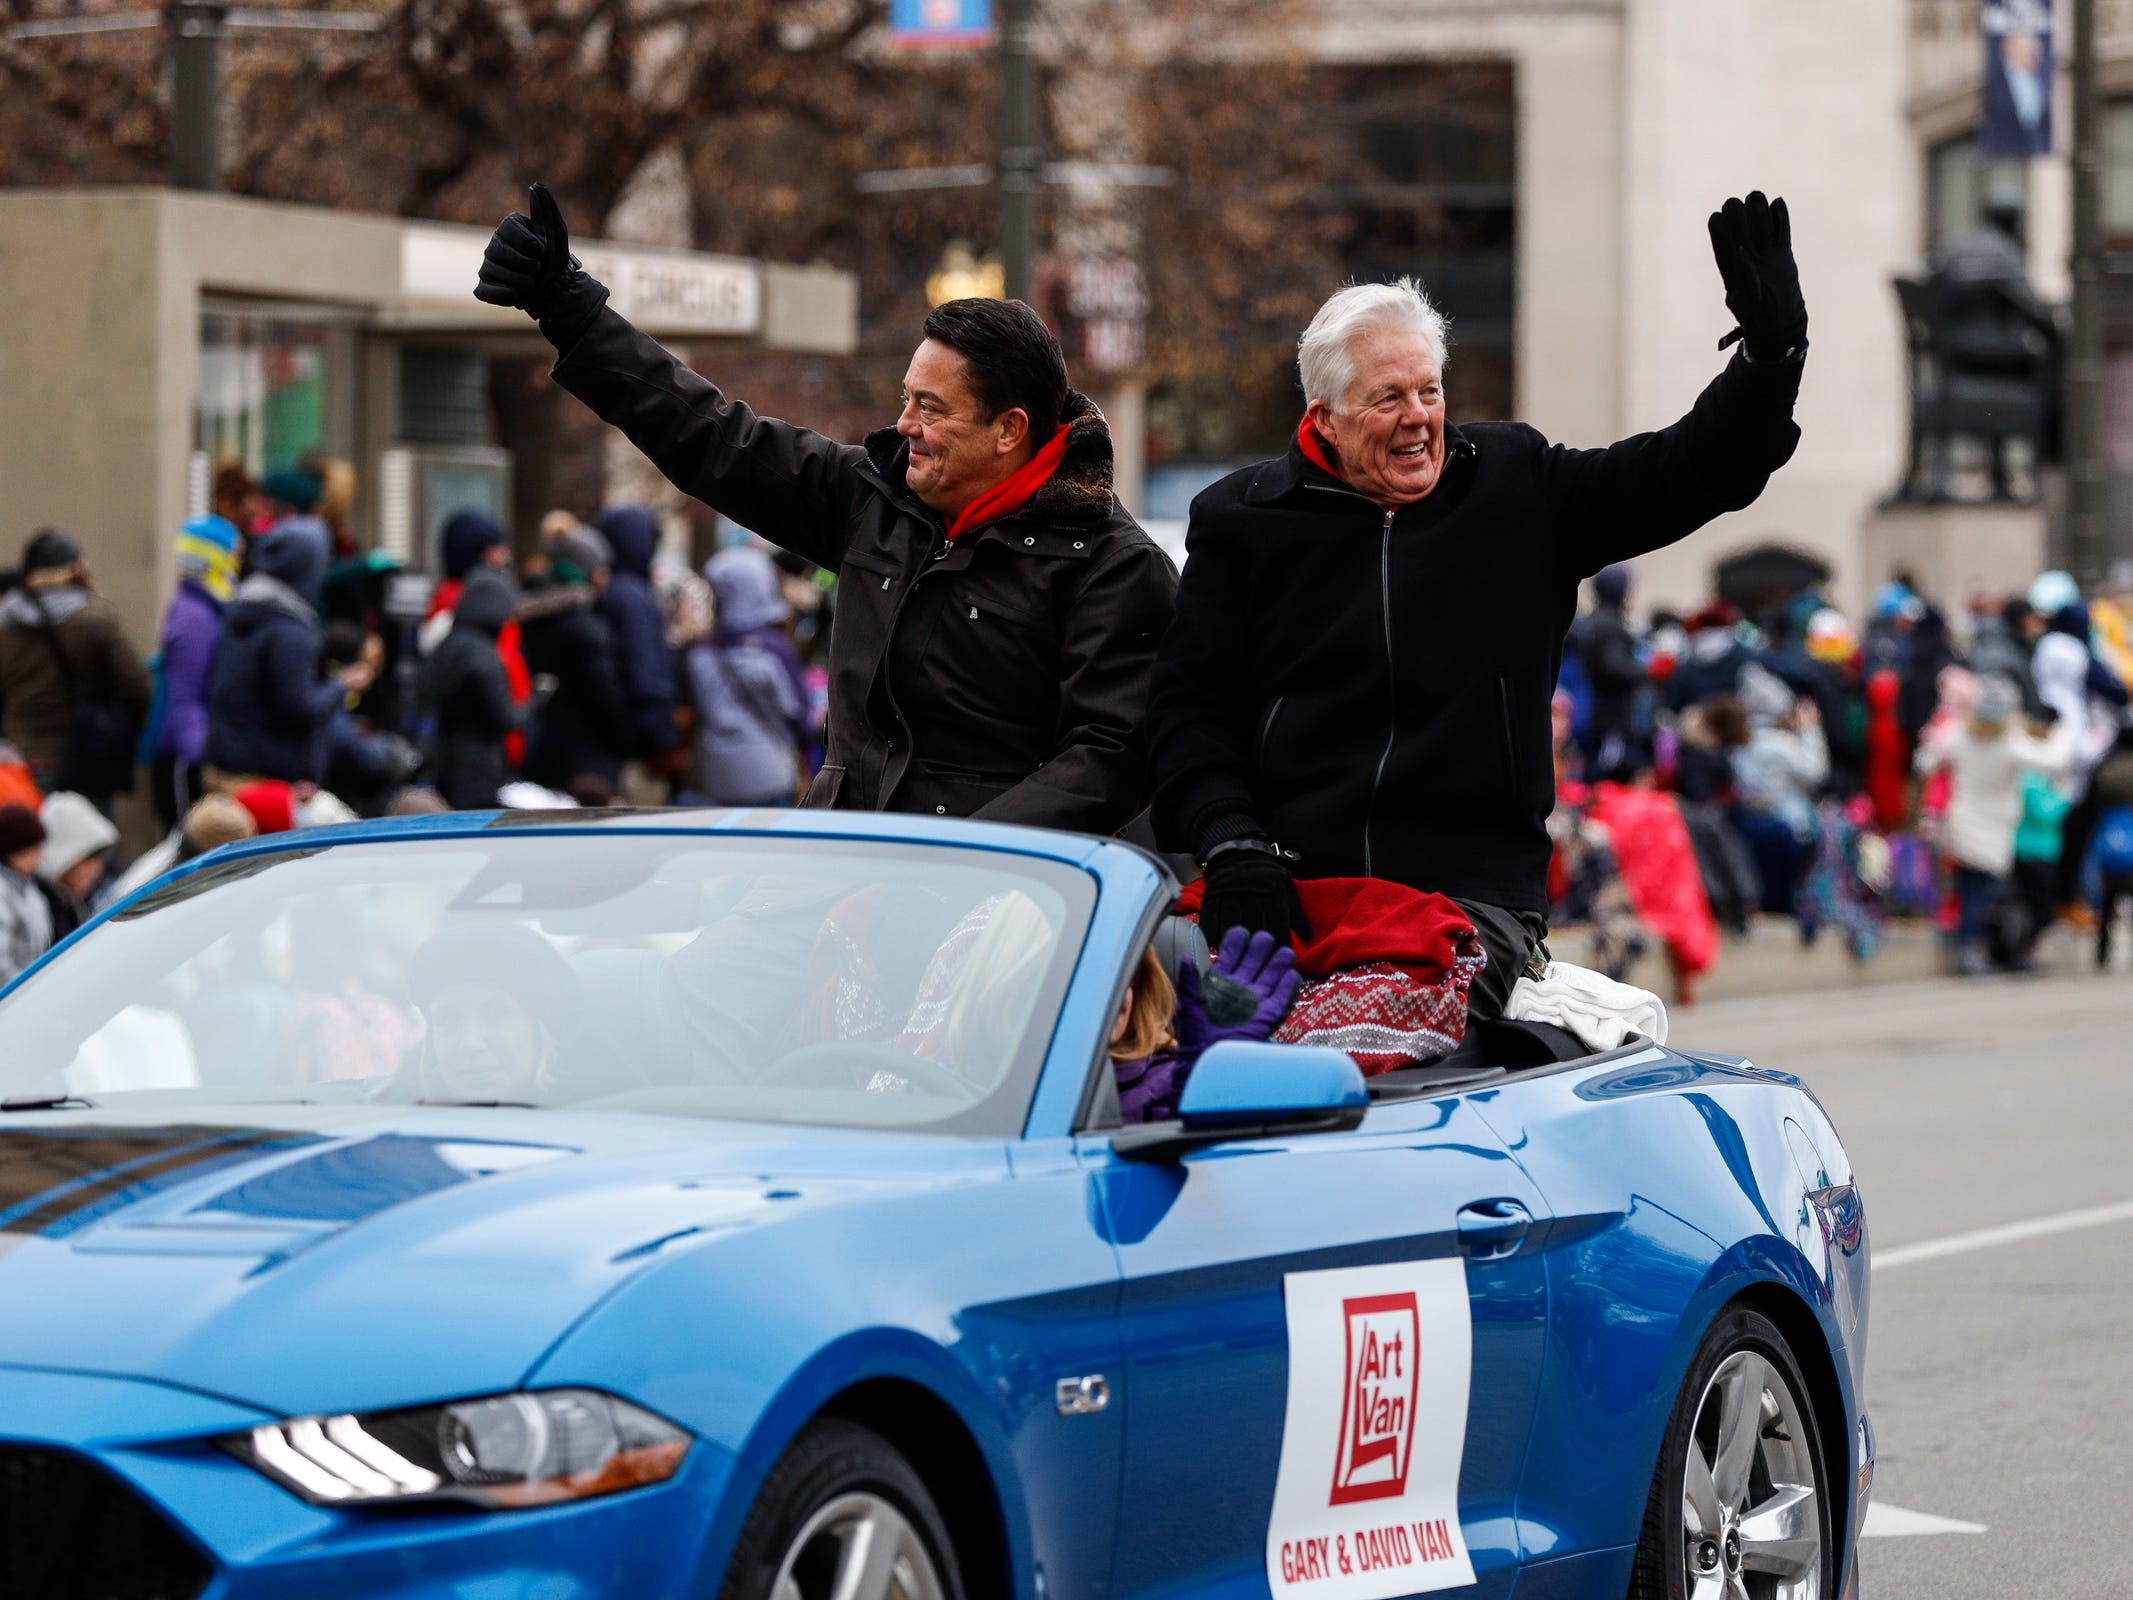 Gary and David Van Elslander of Art Van Furniture wave at the crowd during the 92nd America's Thanksgiving Day Parade in Detroit, Thursday, Nov. 22, 2018.